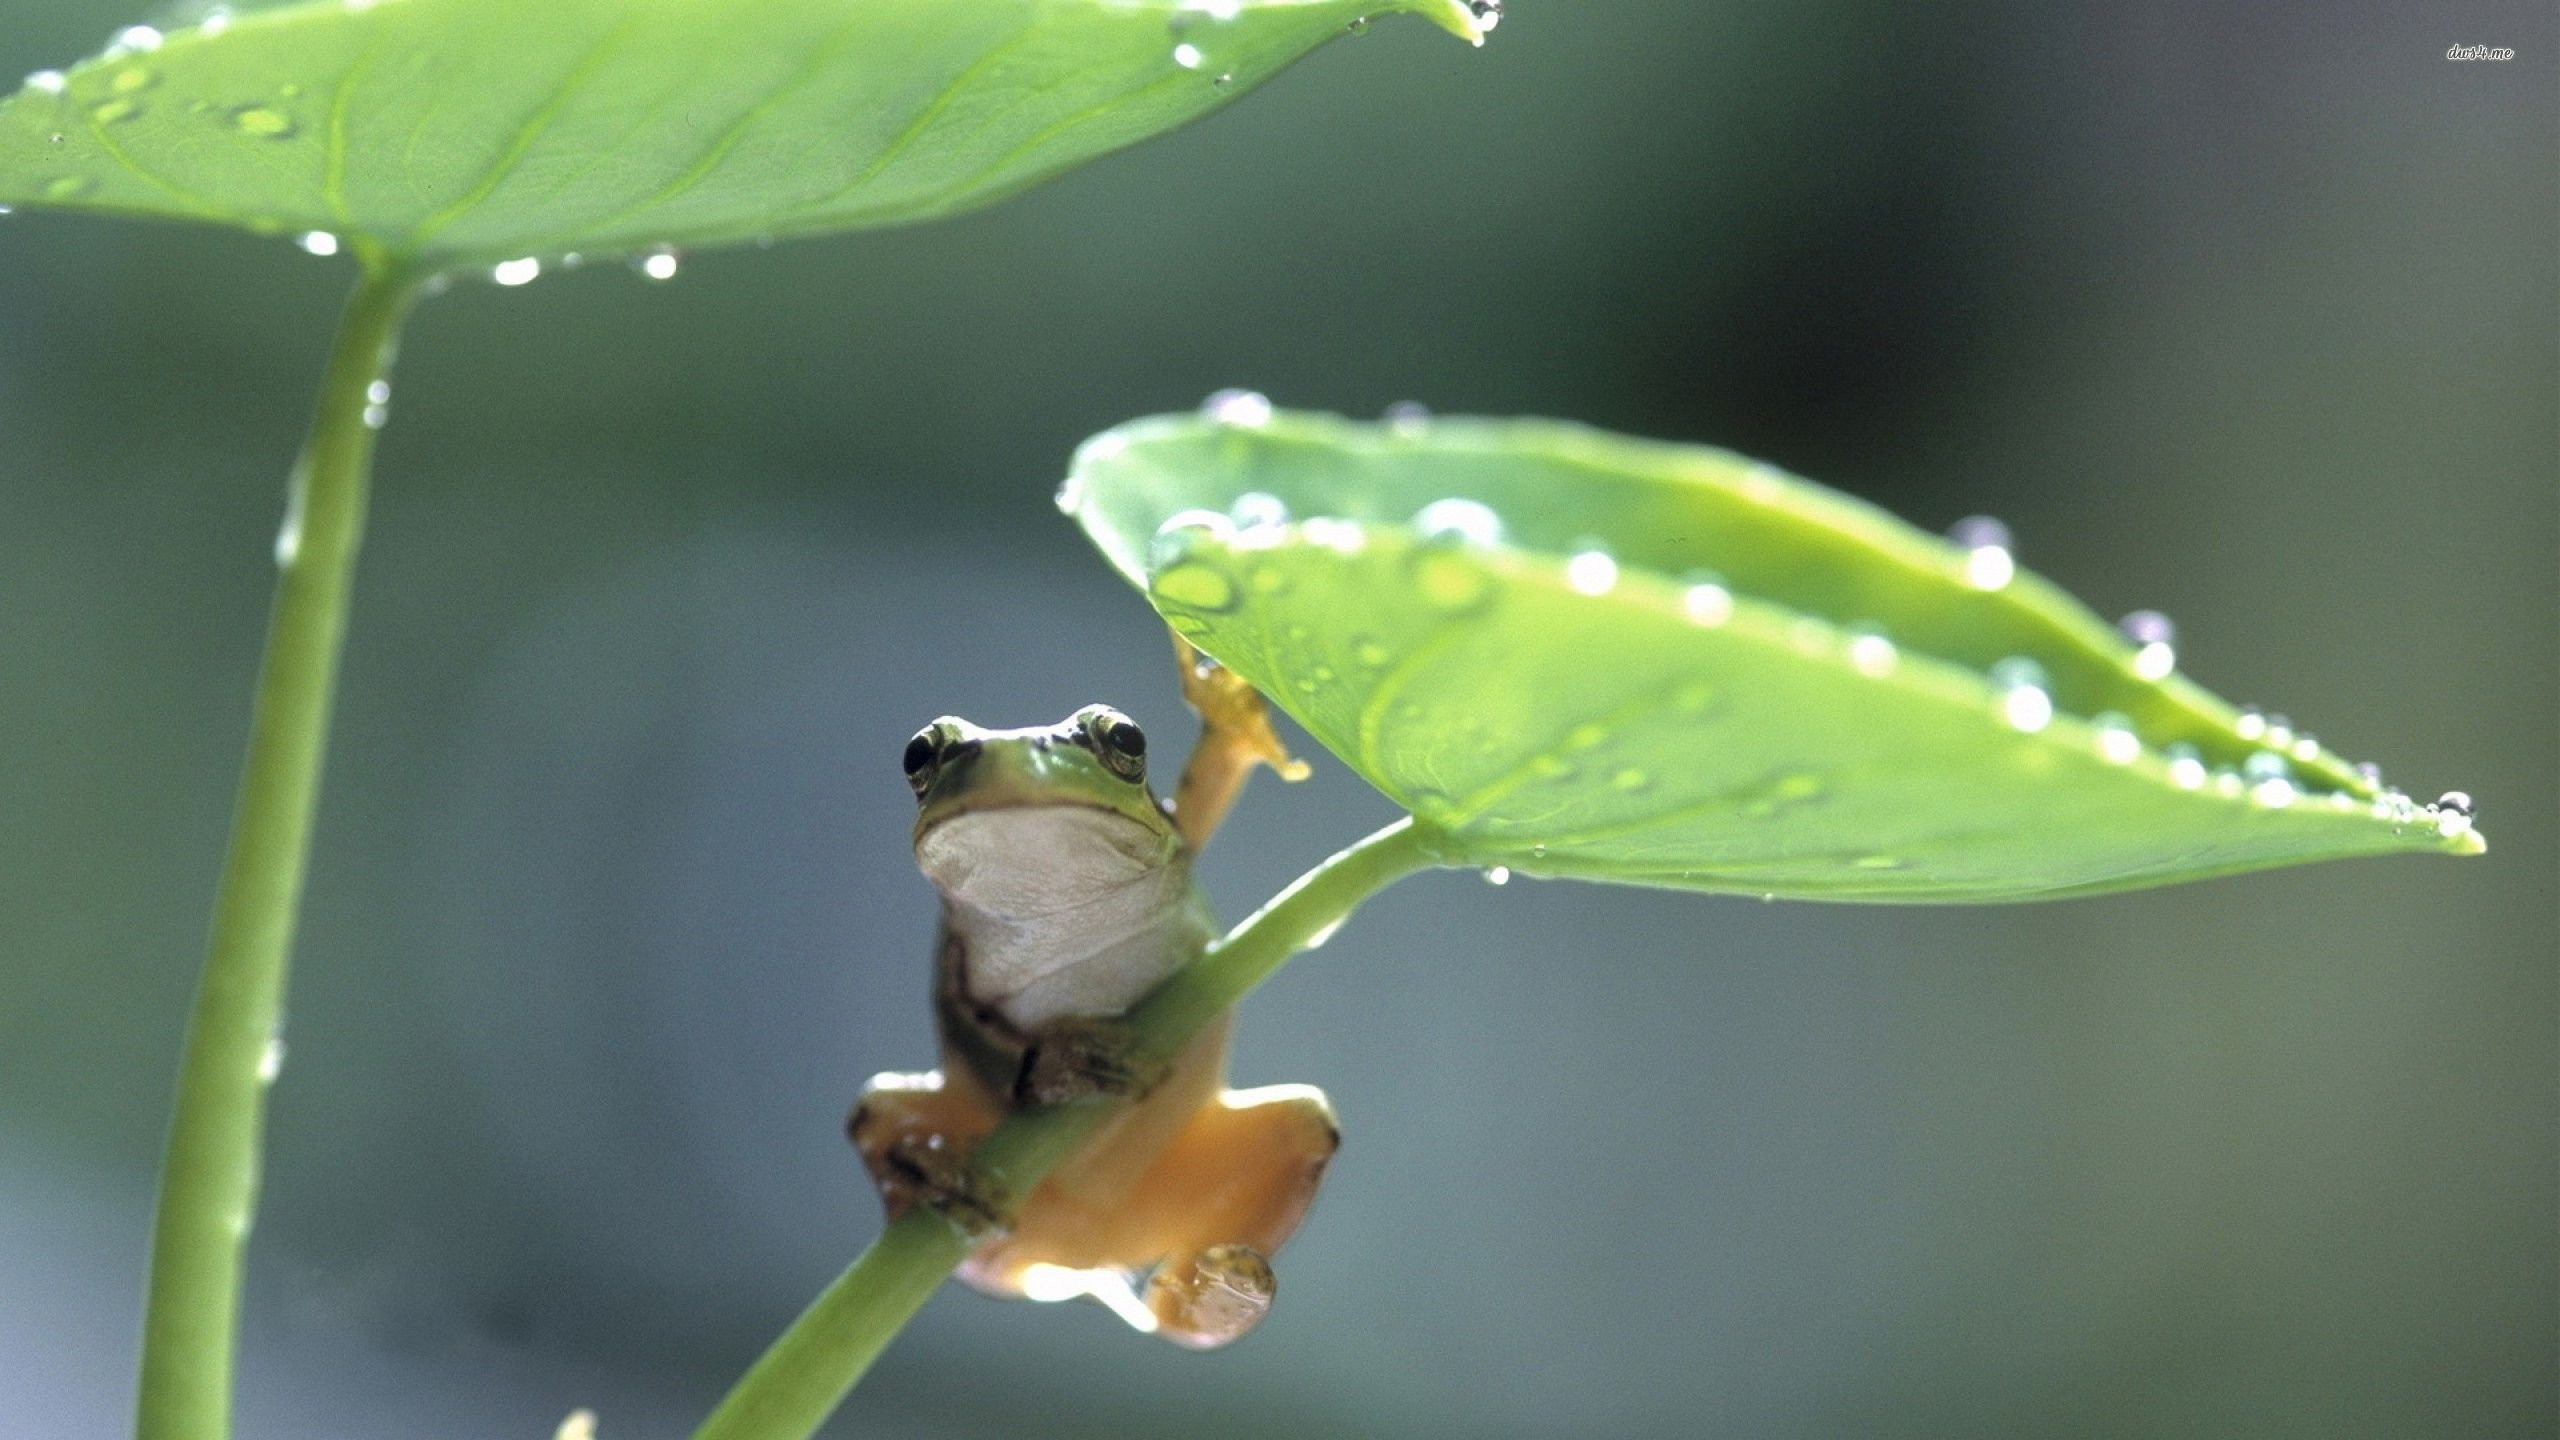 Free download Frog wallpaper ID:328743 hd 2560x1440 for desktop